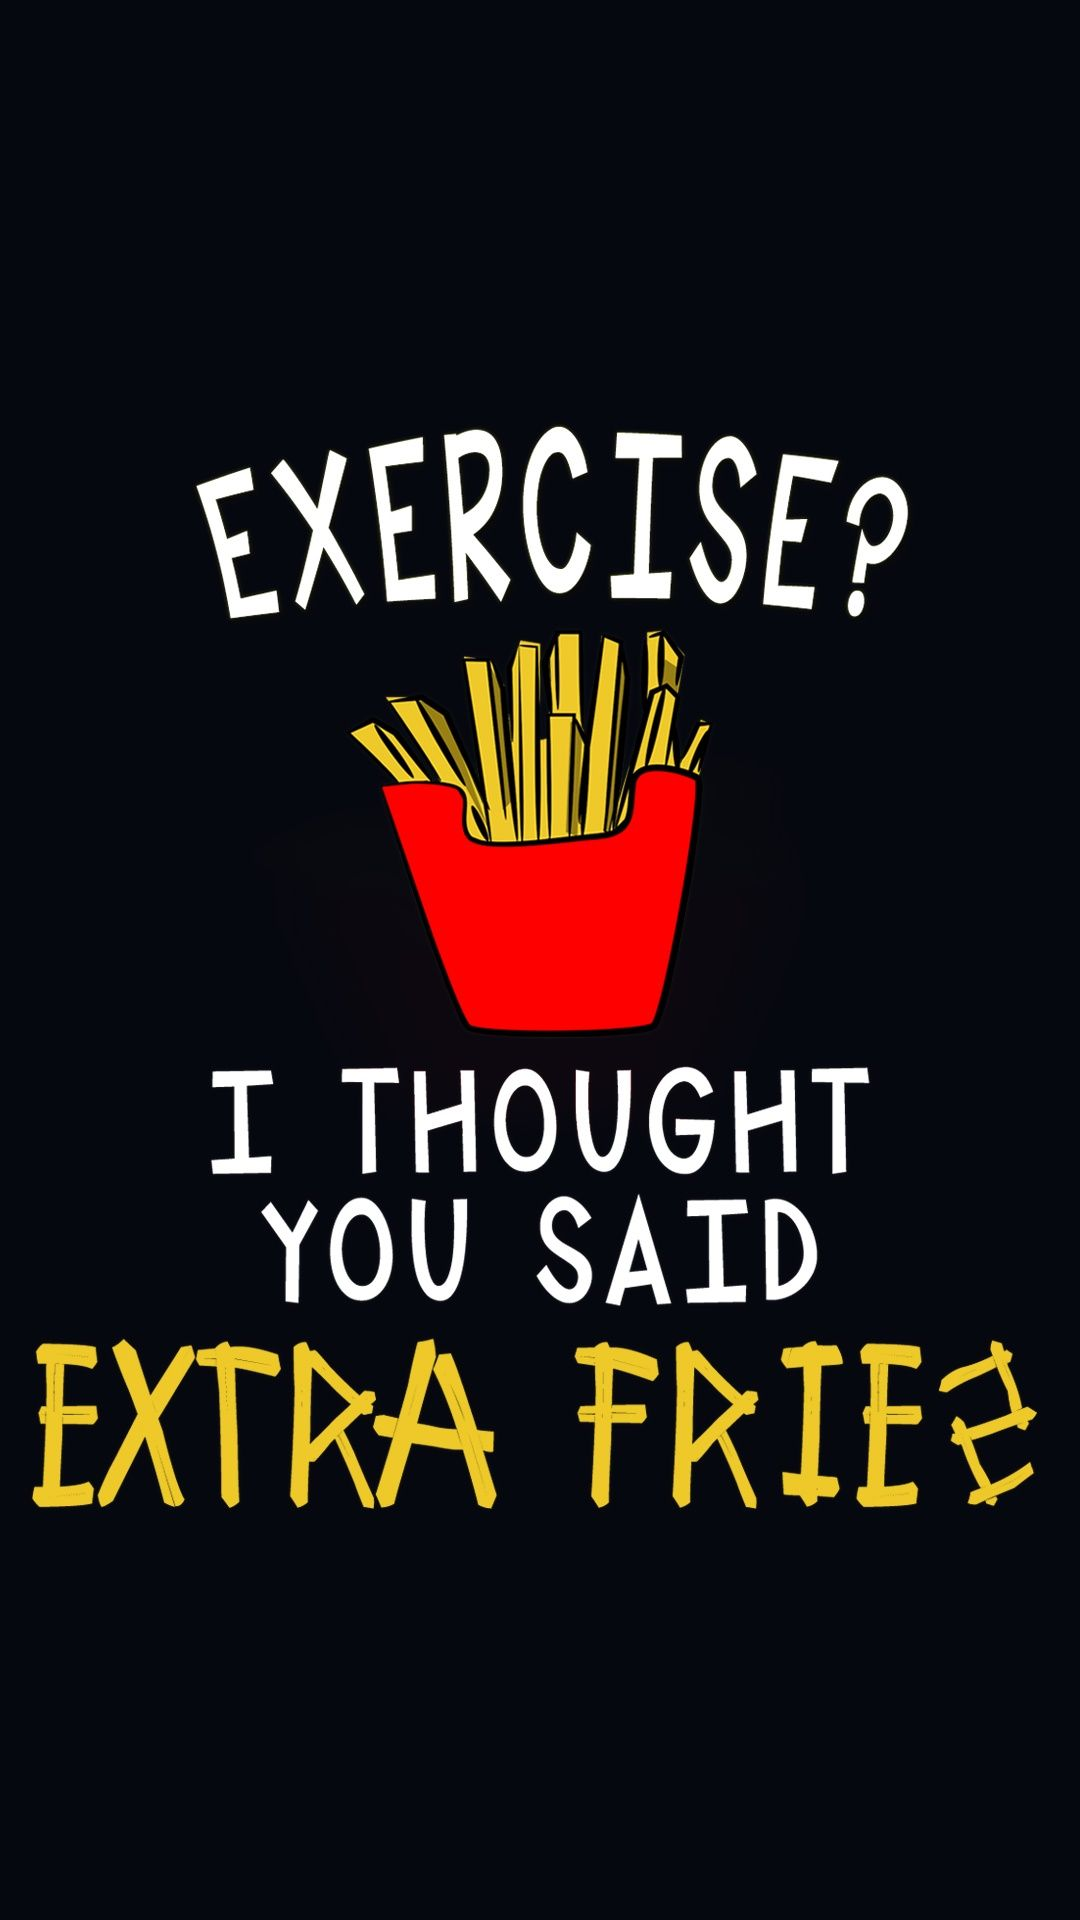 High Quality Love For Fries  @mobile9 | IPhone 6 Funny Wallpapers, Backgrounds, Quotes U0026  Design